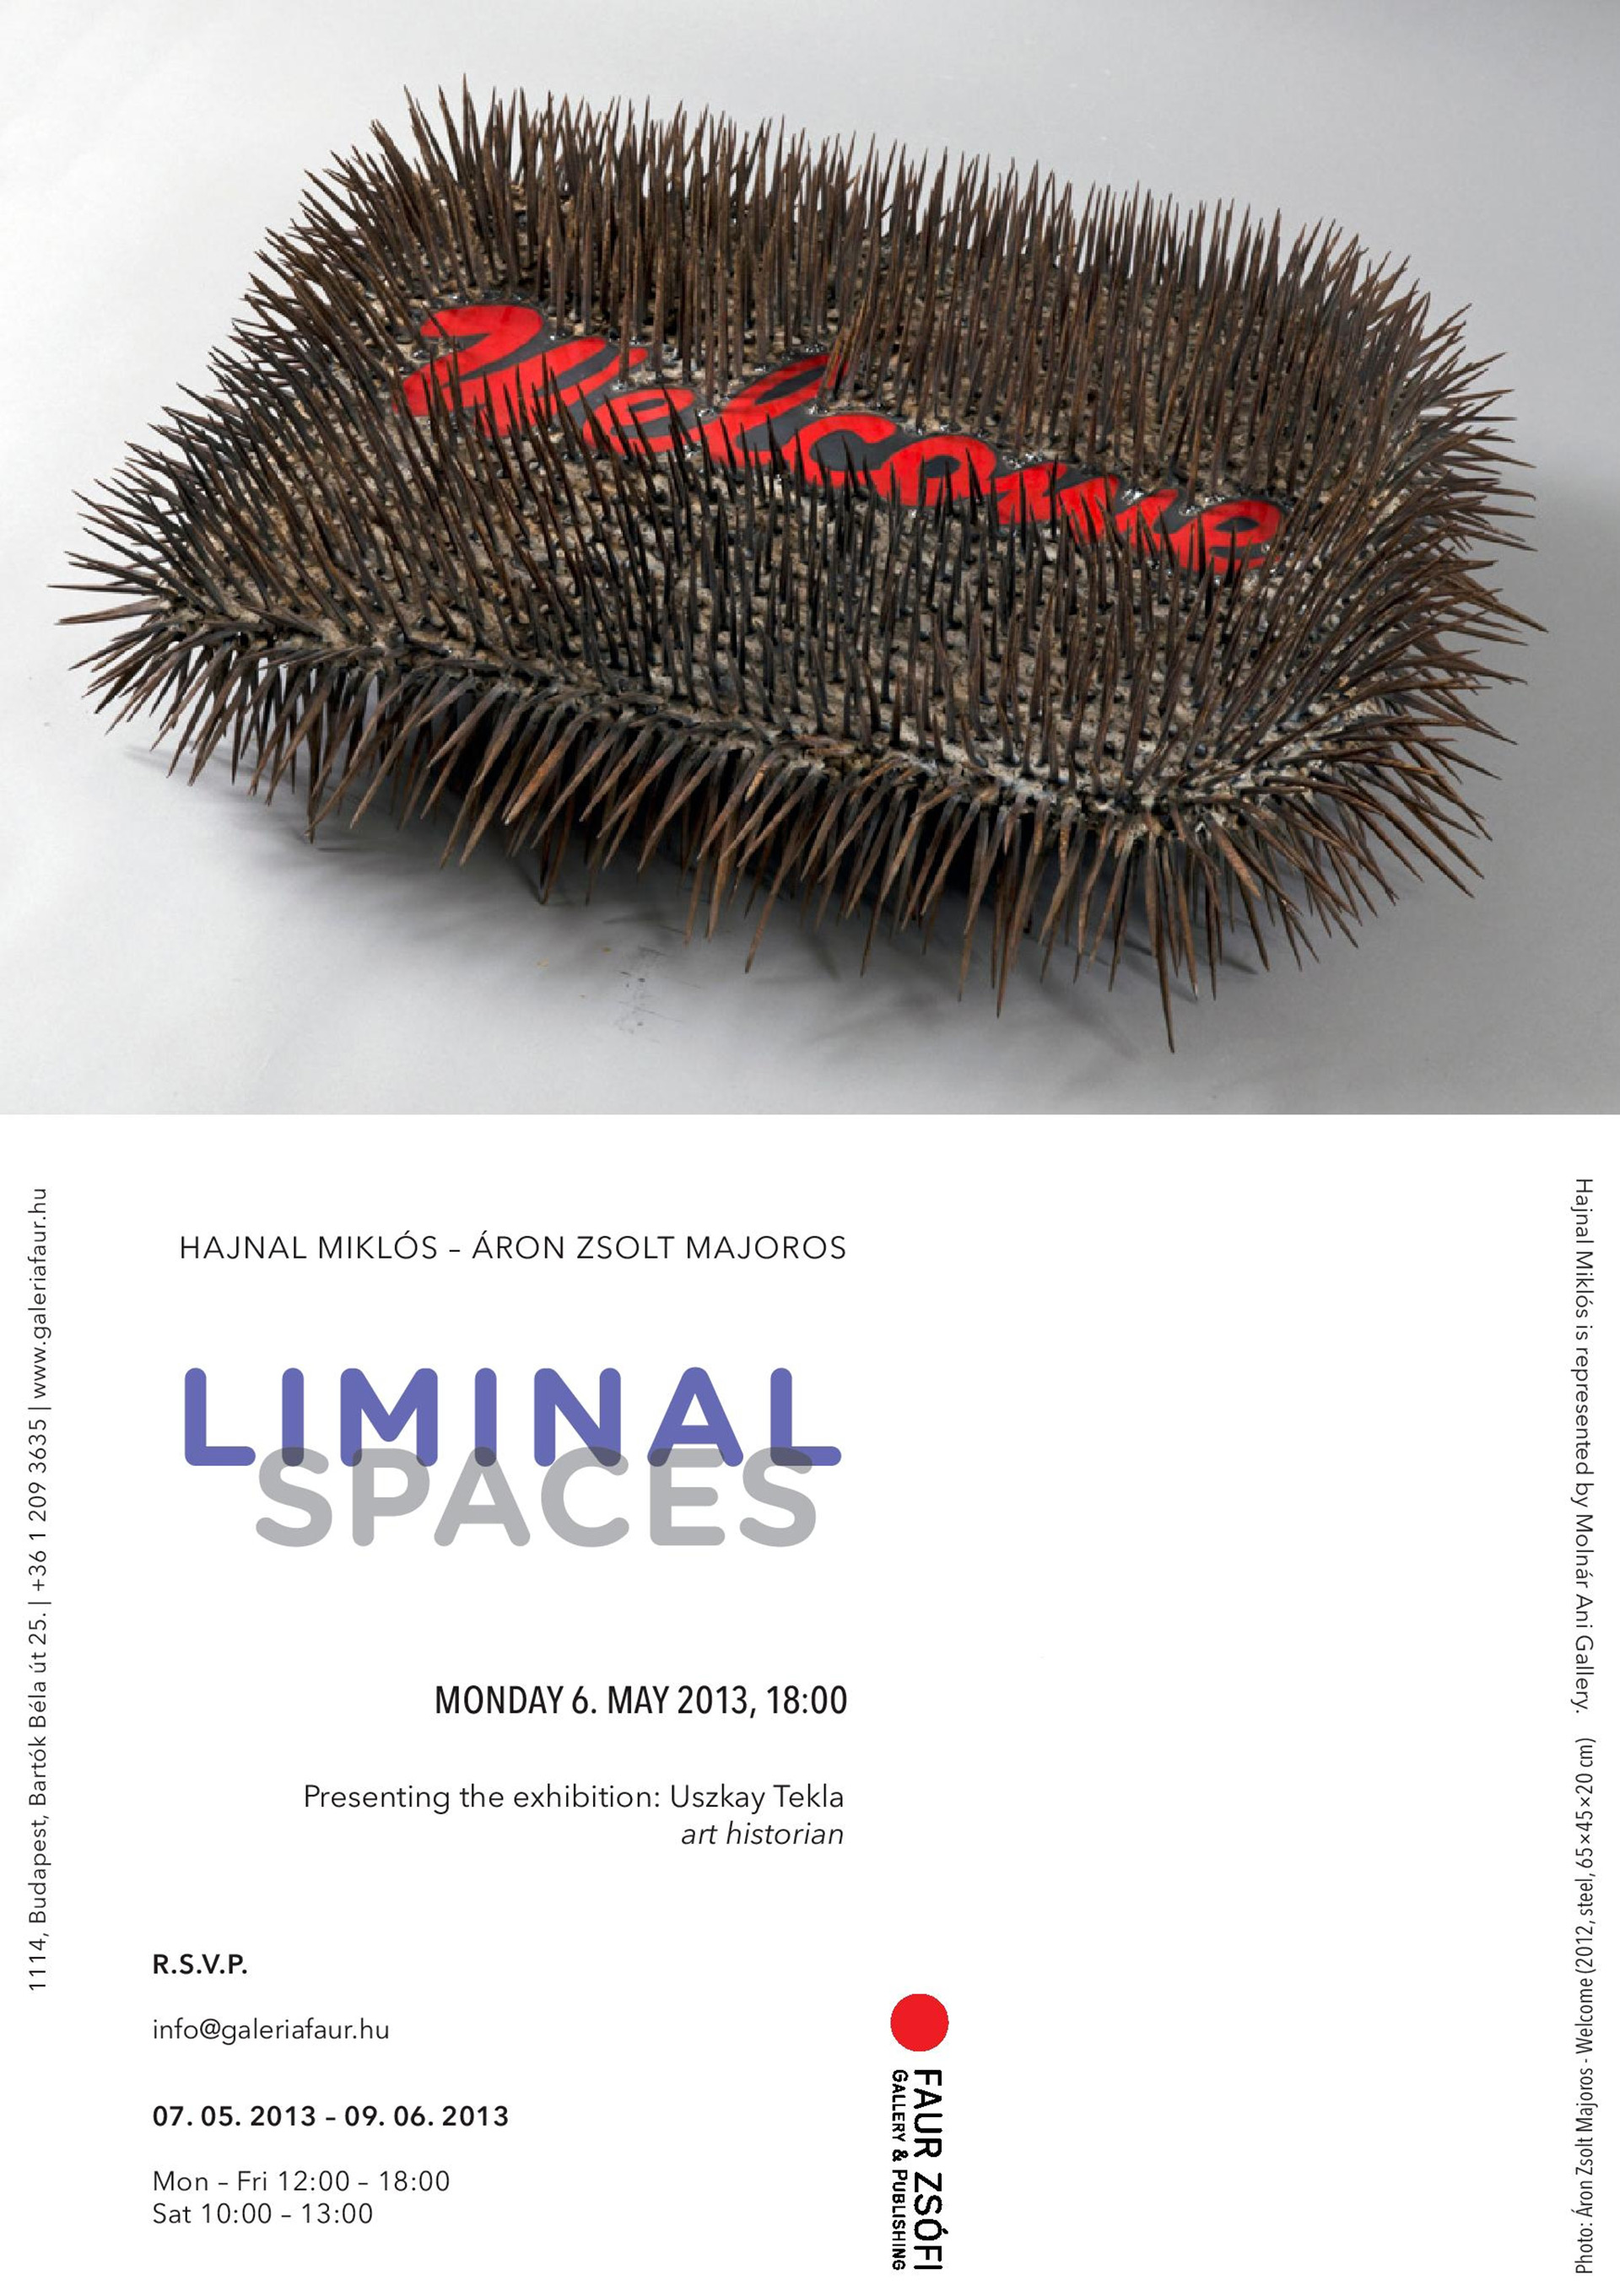 006-liminal_spaces